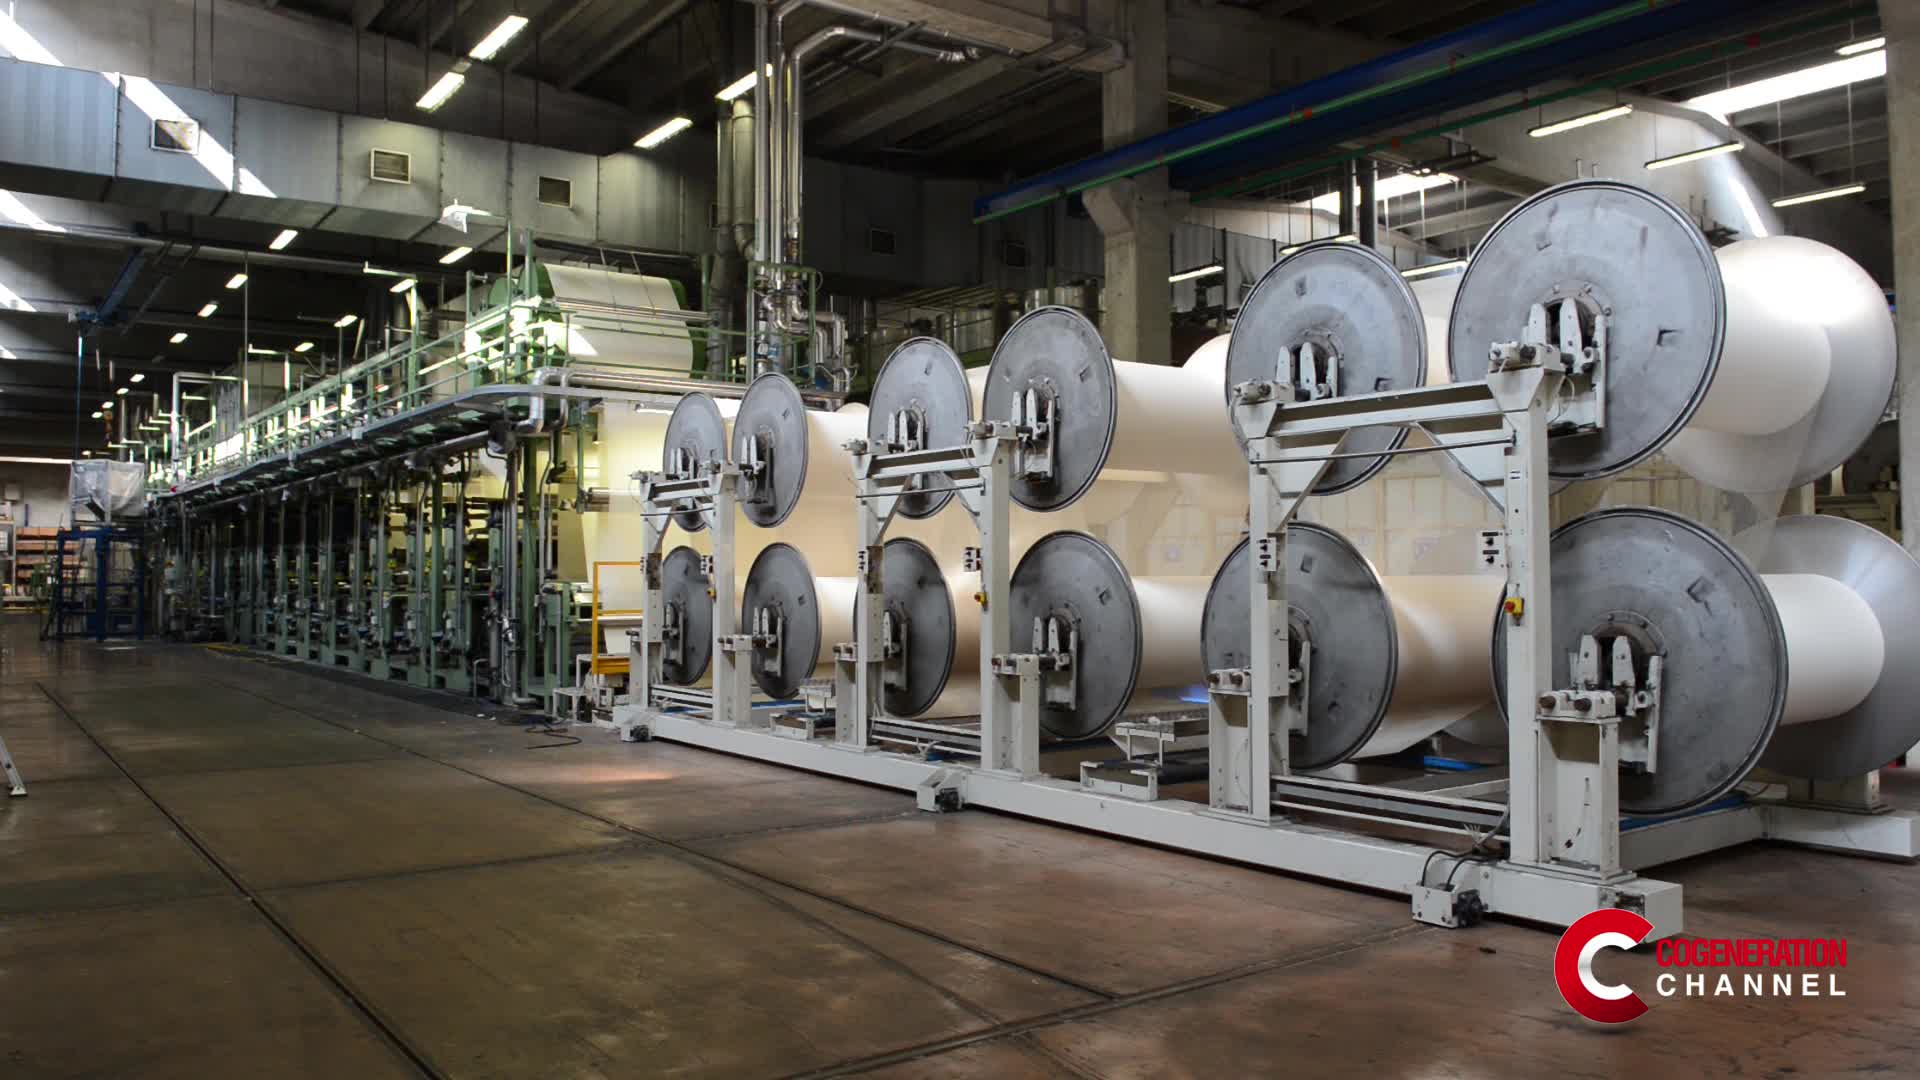 The integration of a cogeneration plant in a textile company